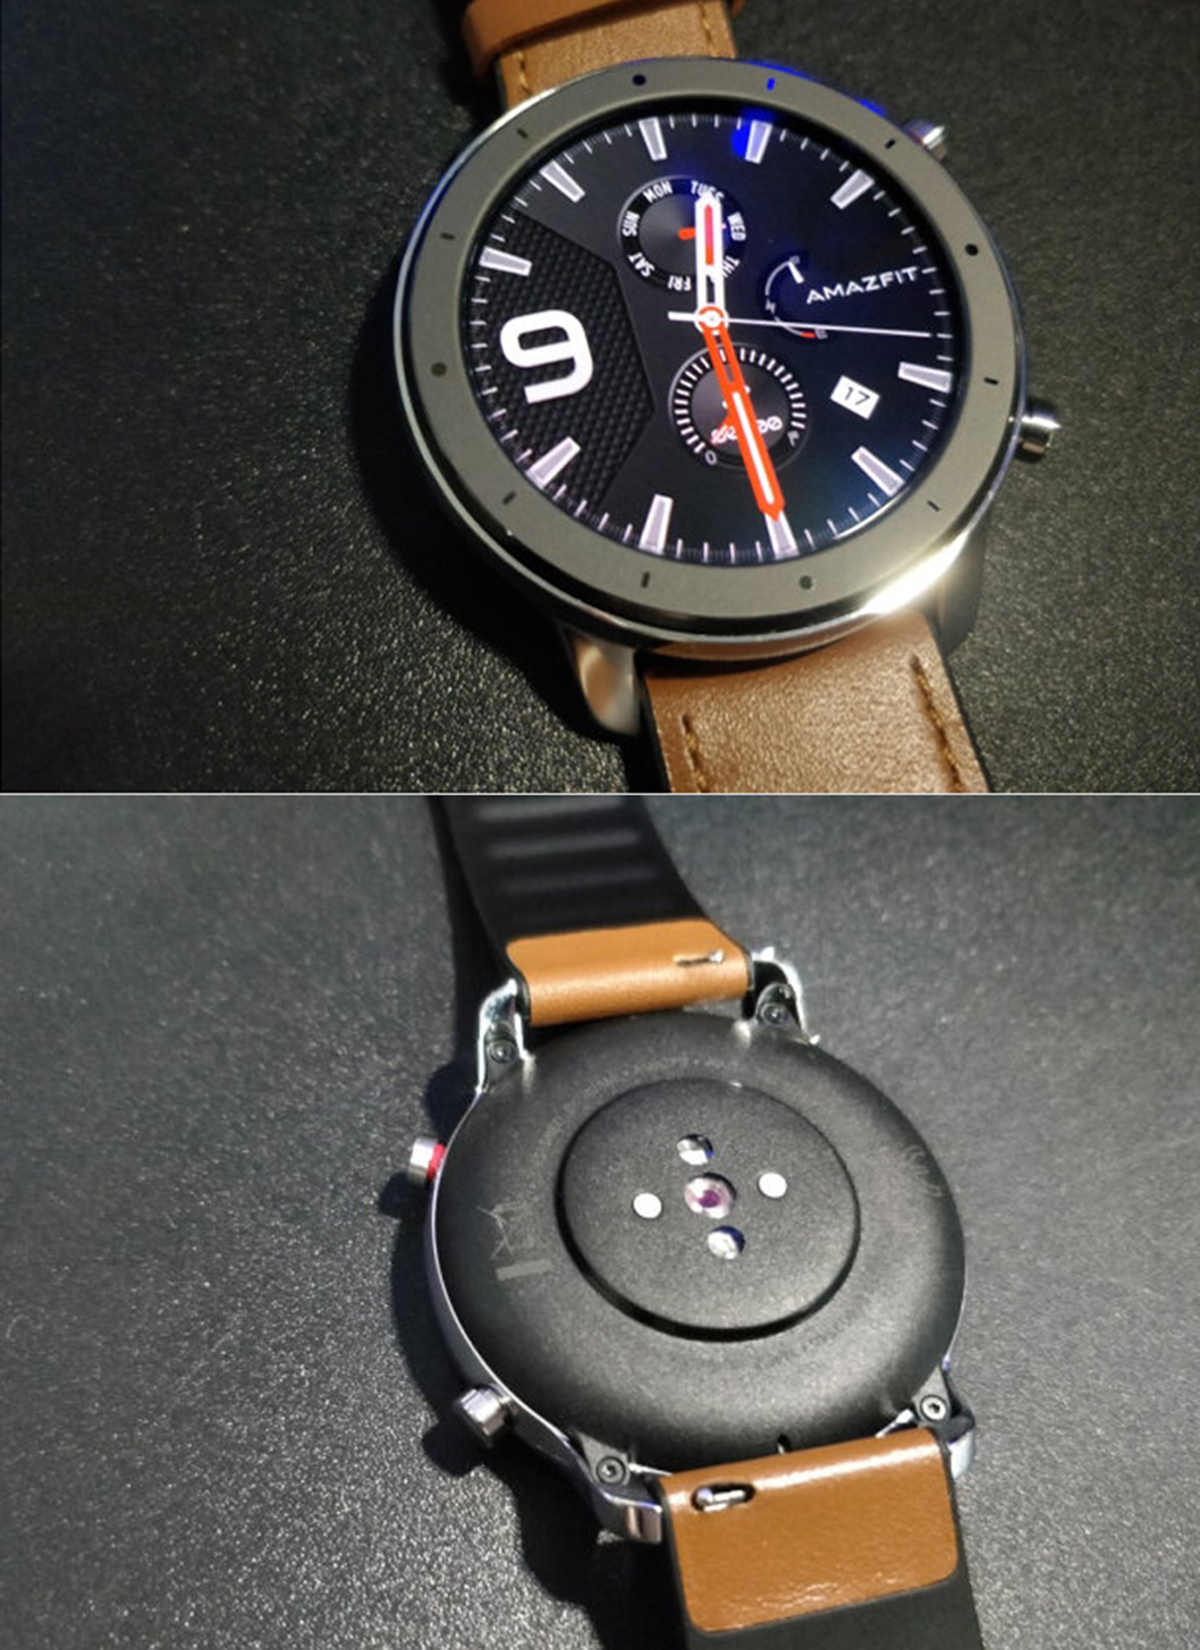 Global version amazfit gtr 47mm smart watch